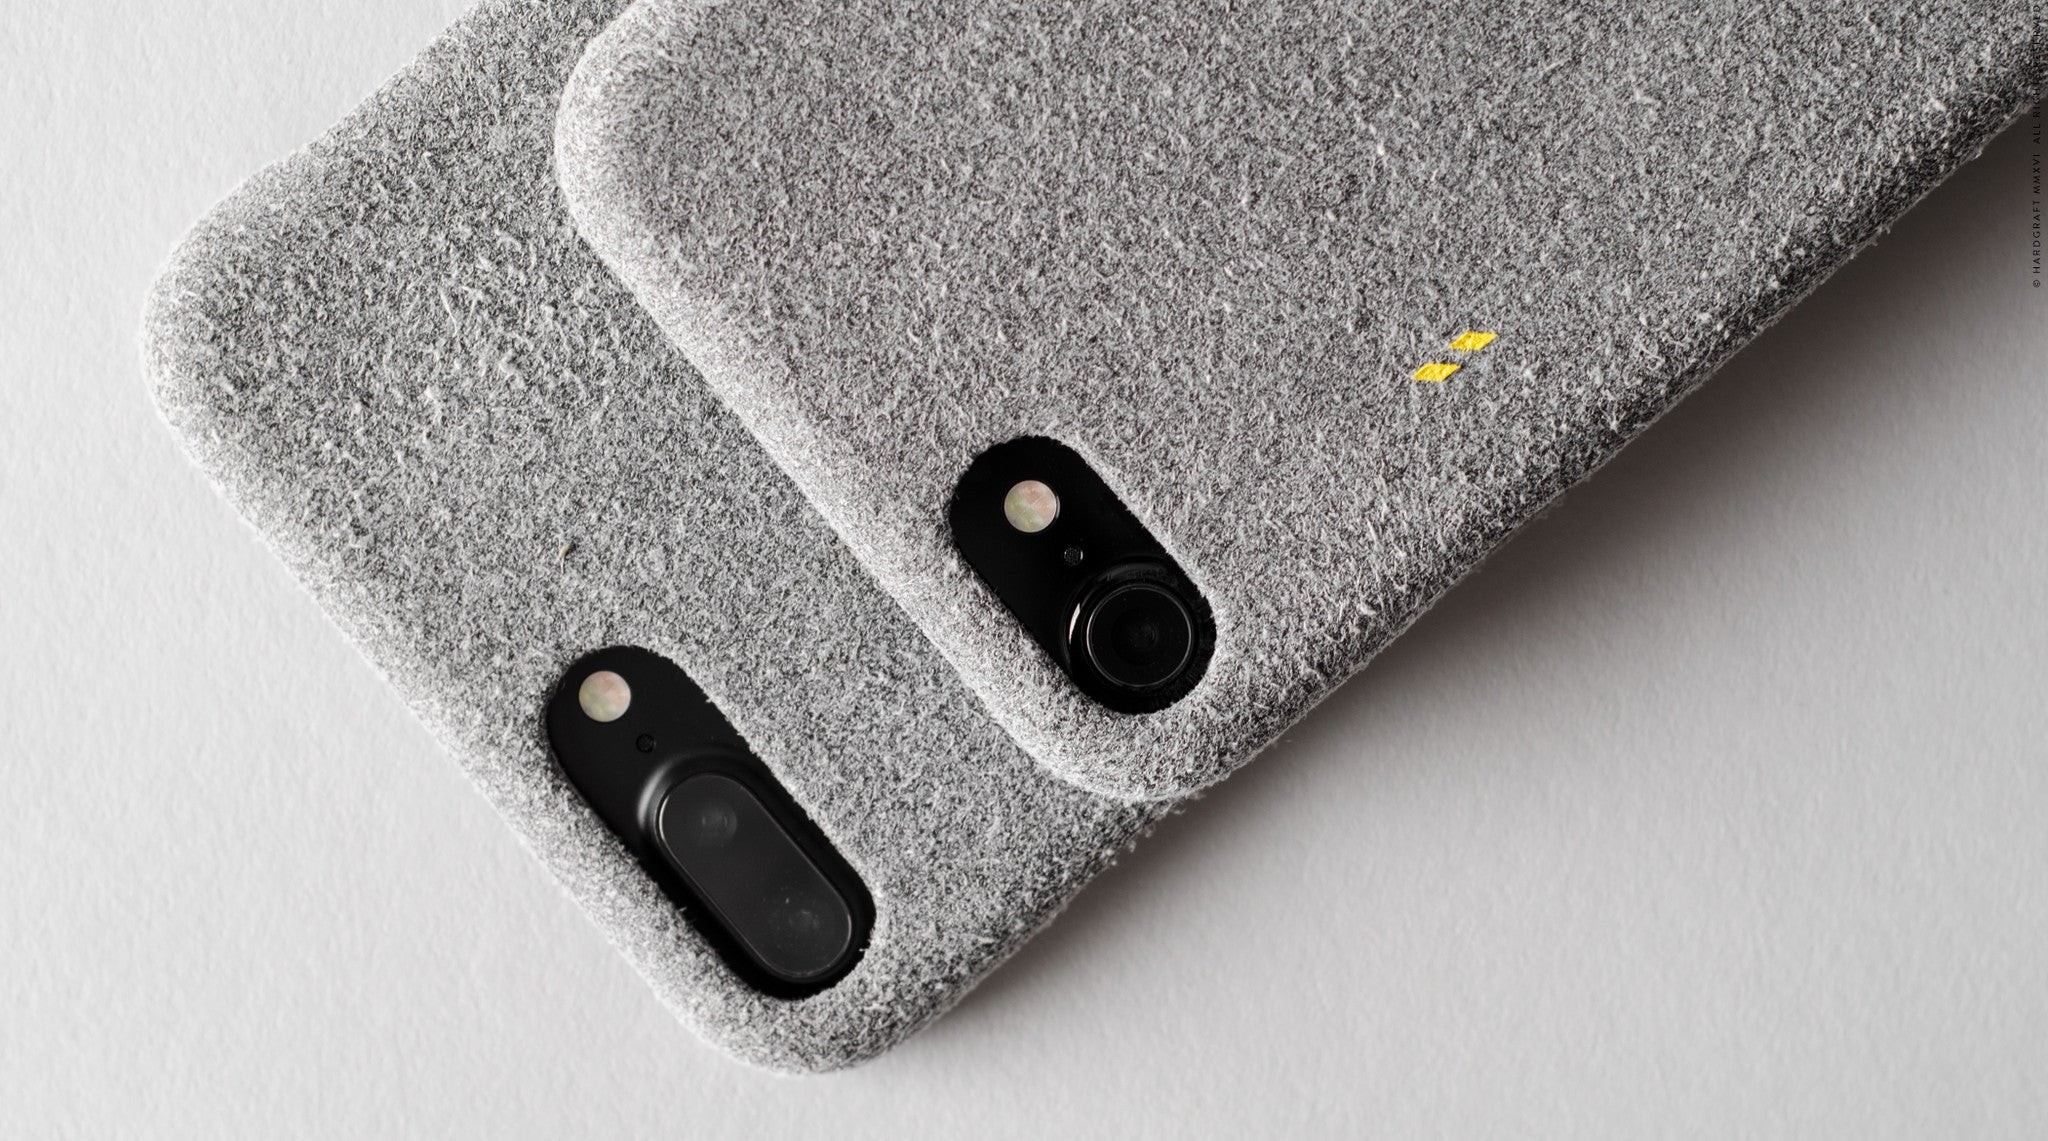 Fuzzy iPhone 7 Cover